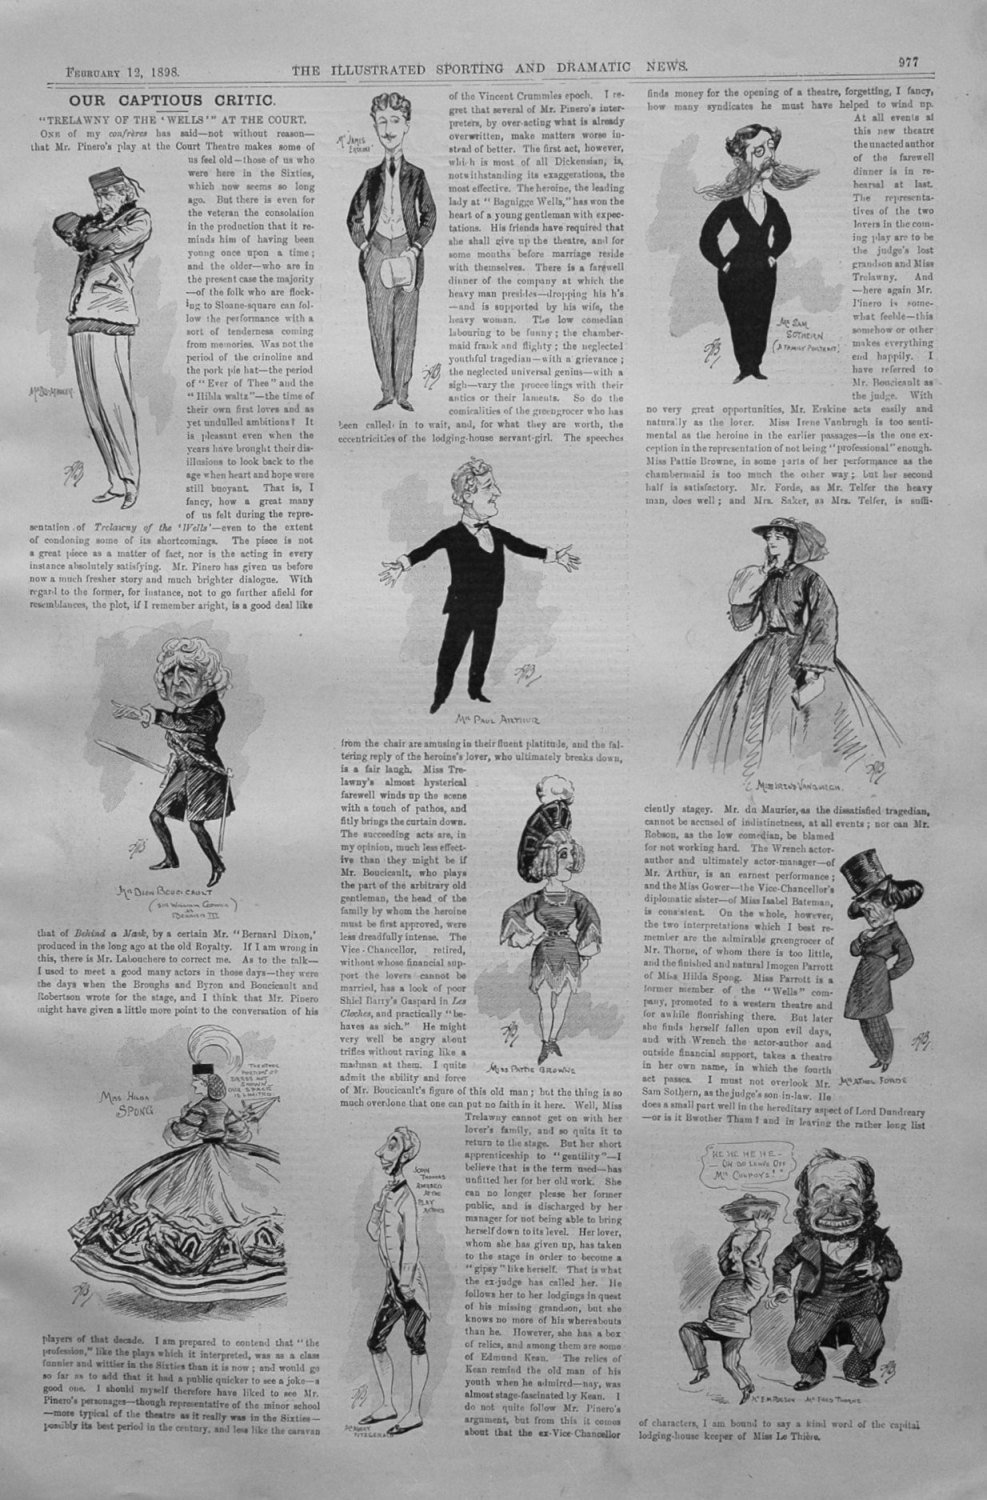 Our Captious Critic, February 12th 1898.